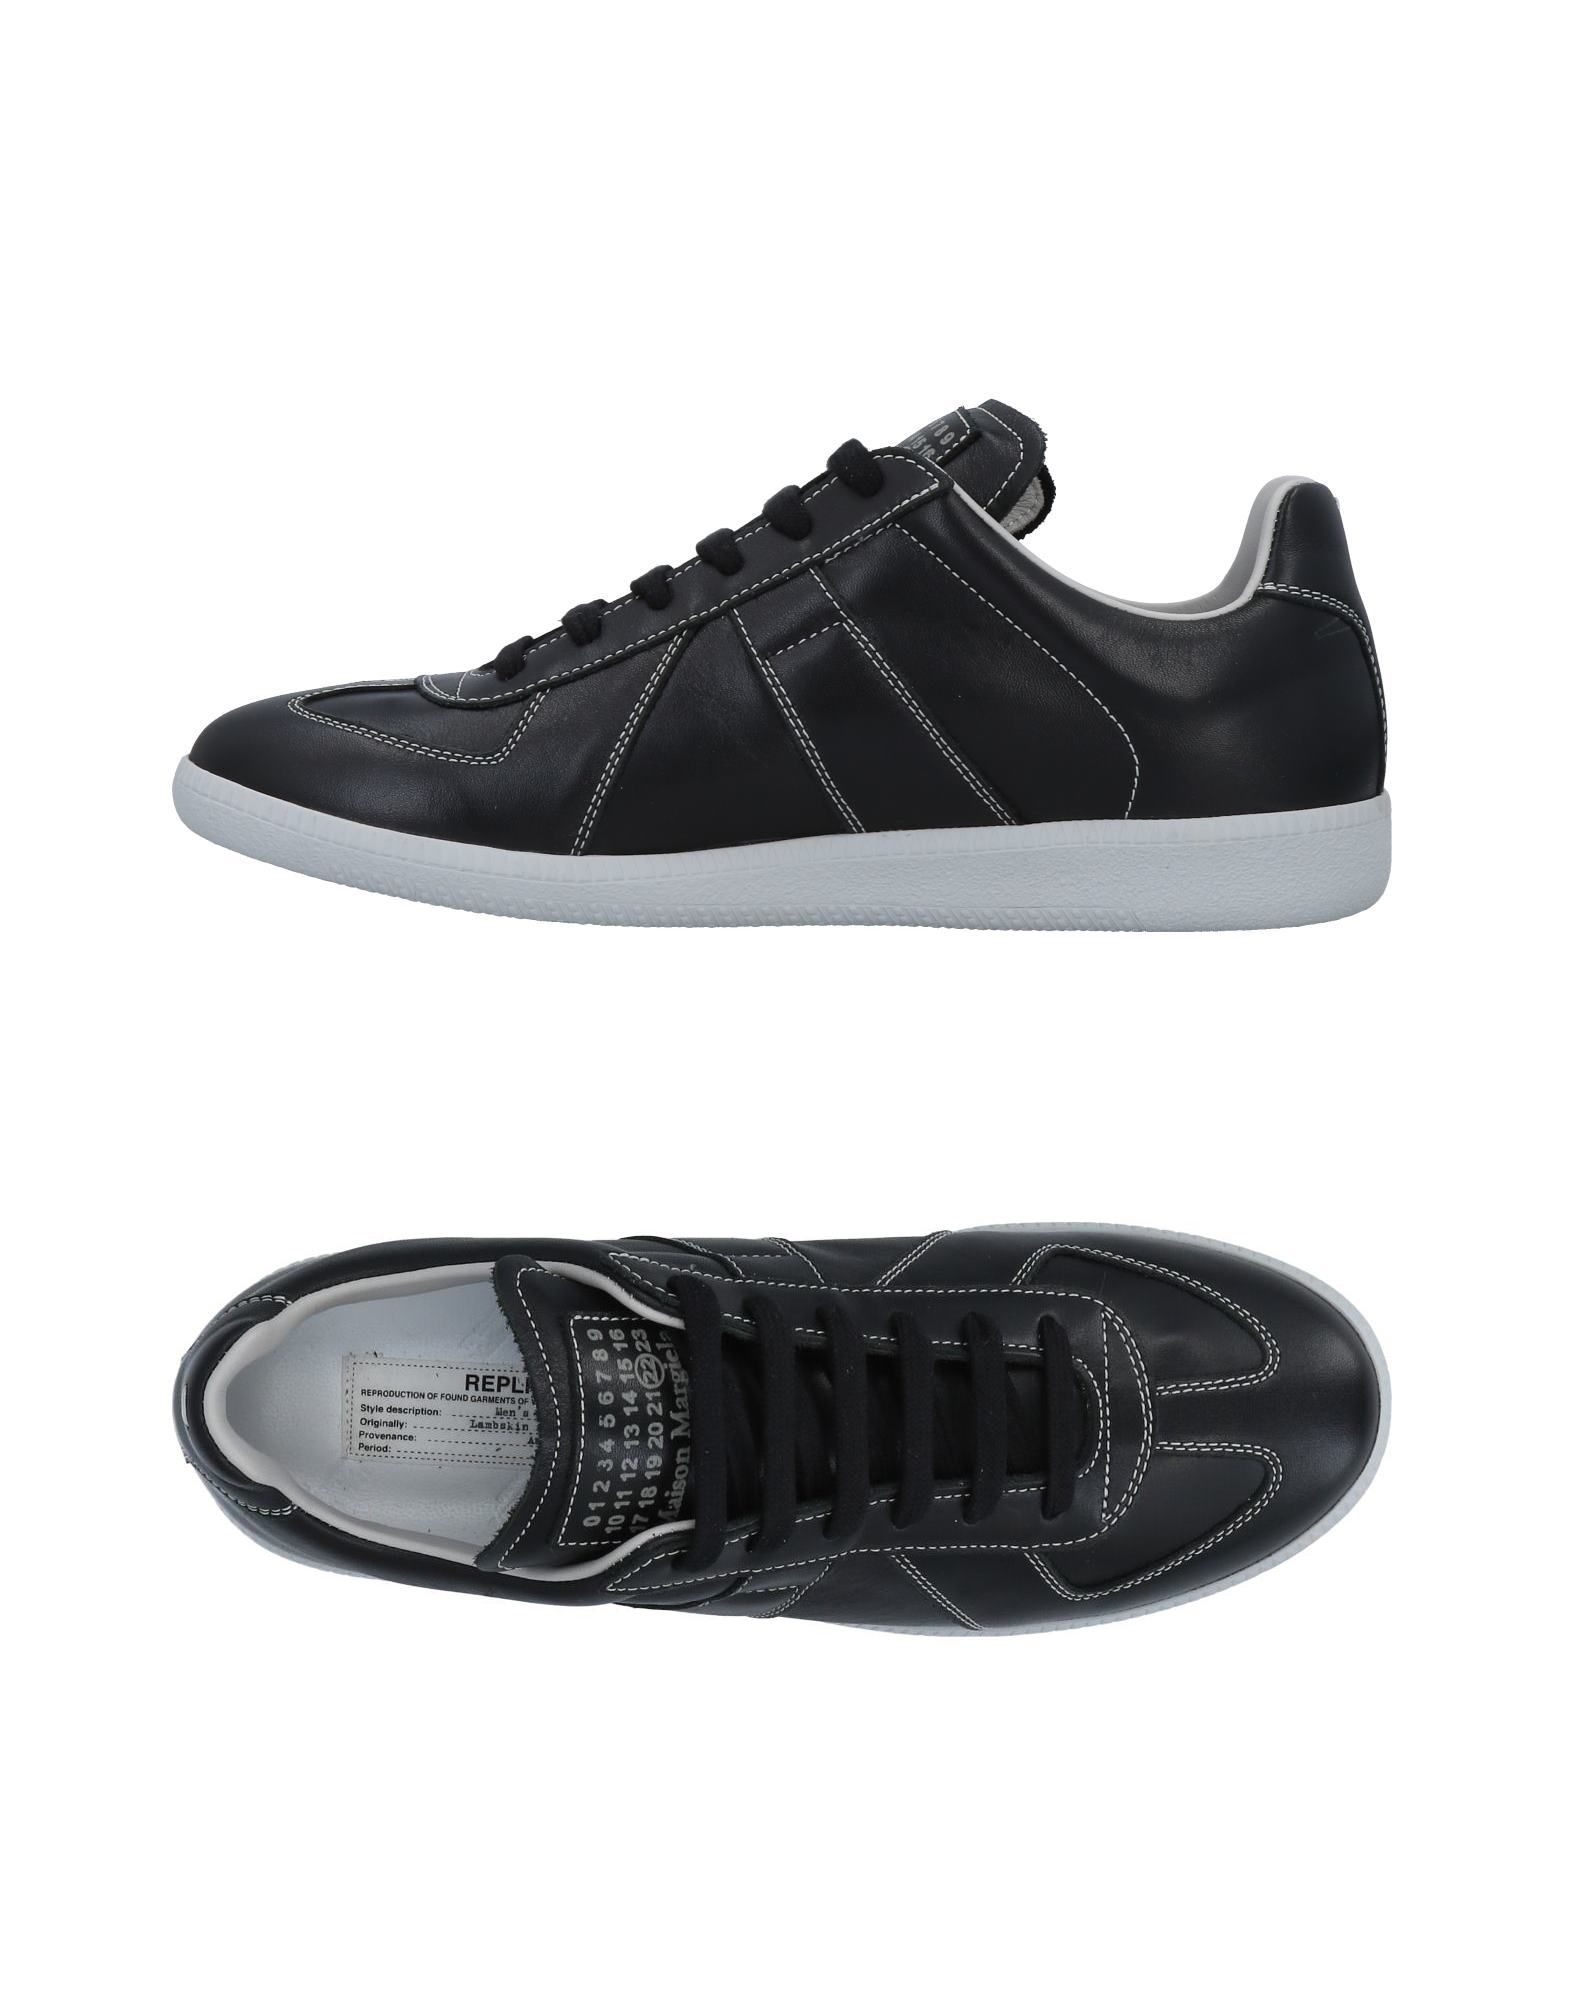 Maison Margiela Sneakers - Men Maison Margiela United Sneakers online on  United Margiela Kingdom - 11485376EK 635c29